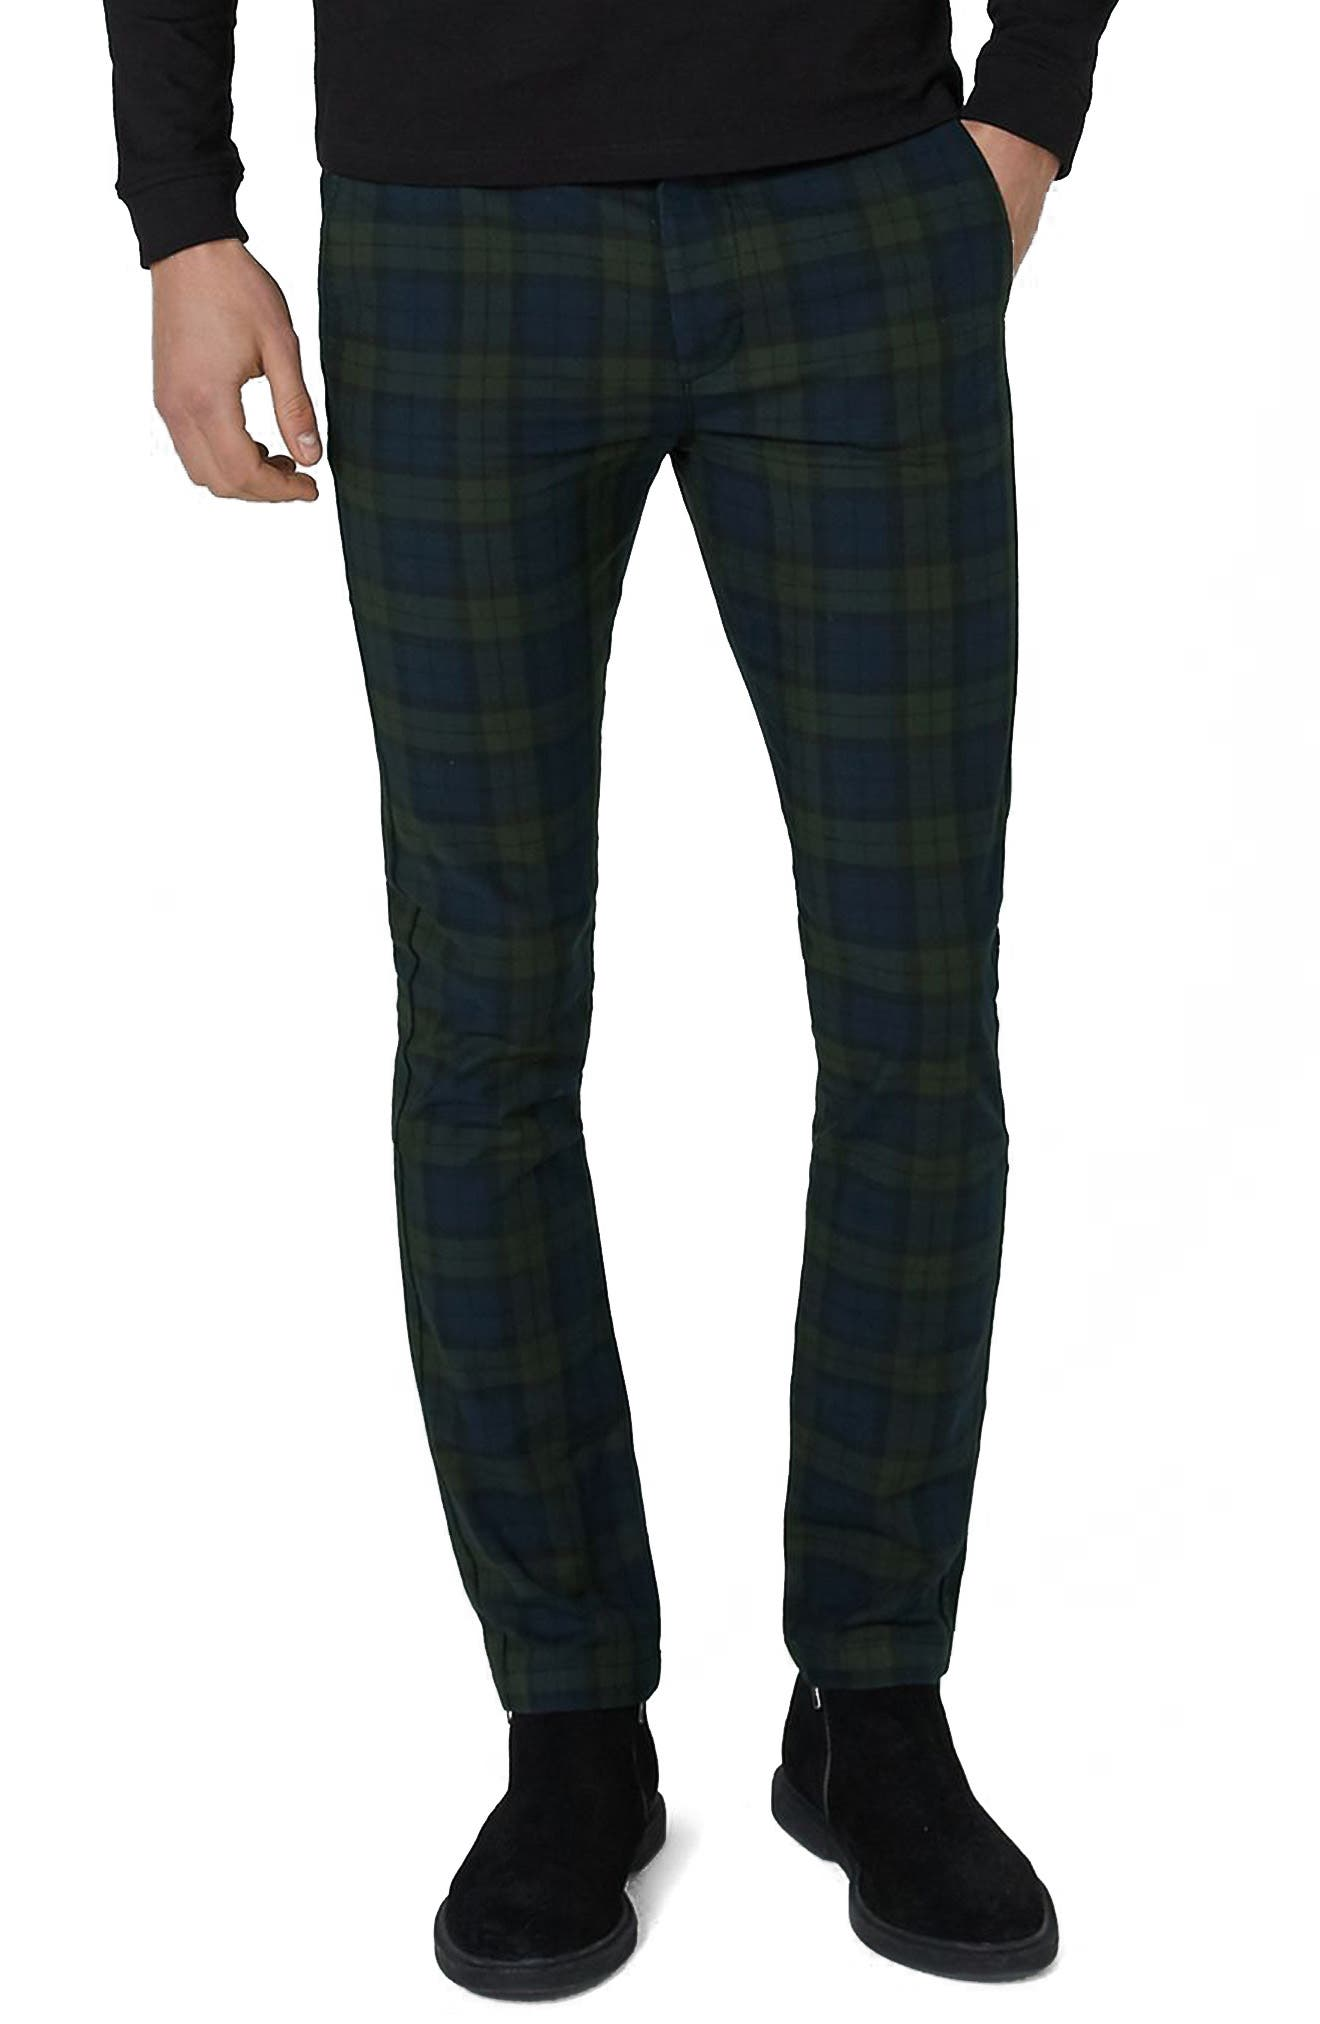 Alternate Image 1 Selected - Topman Black Watch Check Stretch Skinny Fit Trousers